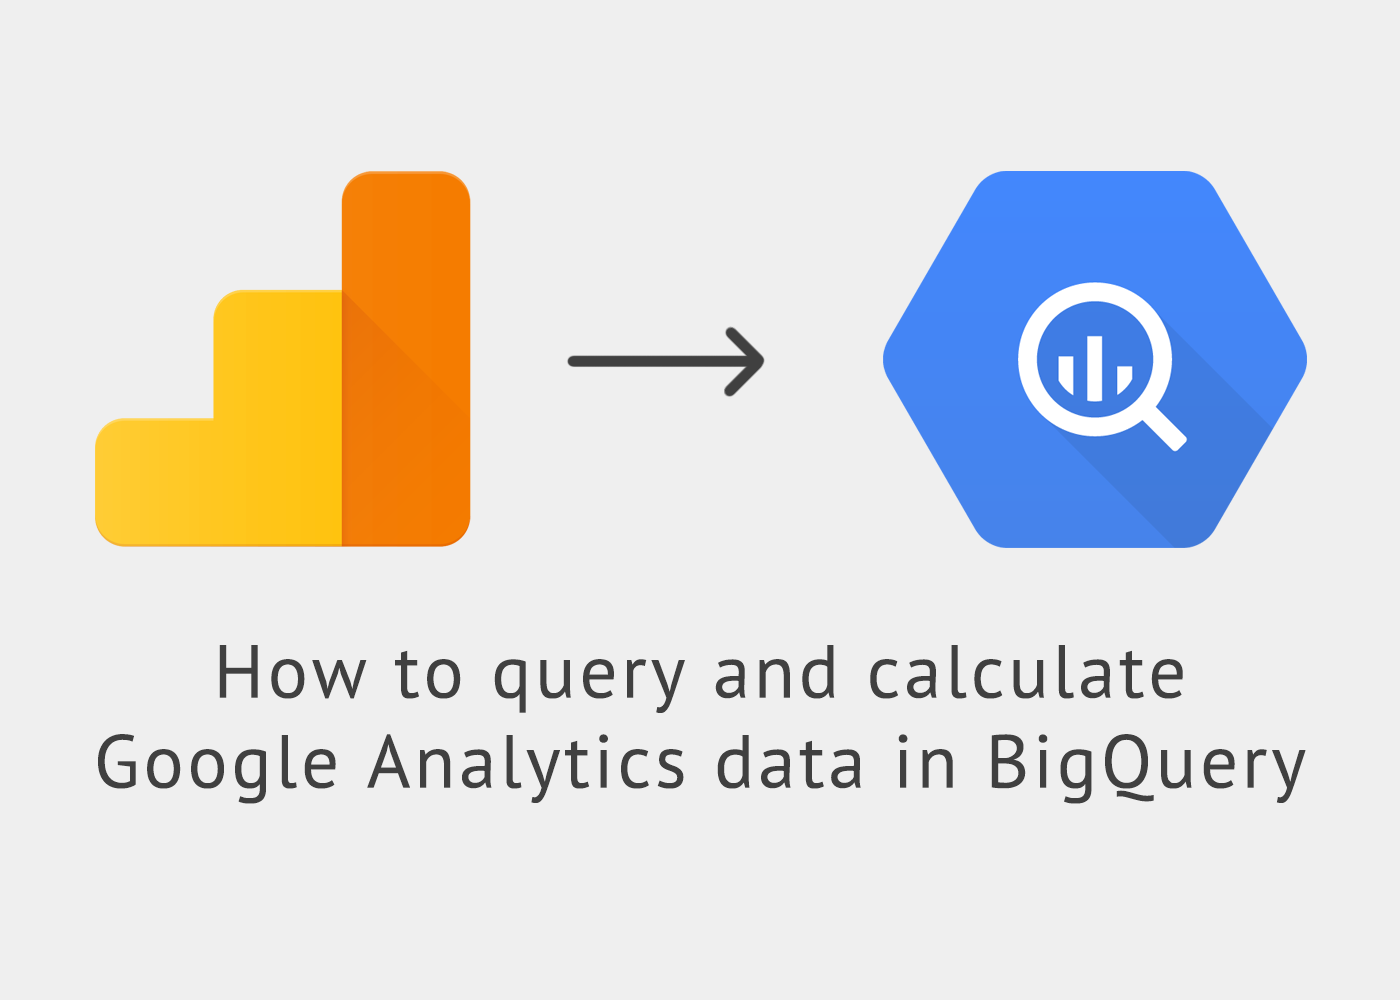 How to query and calculate Google Analytics data in BigQuery